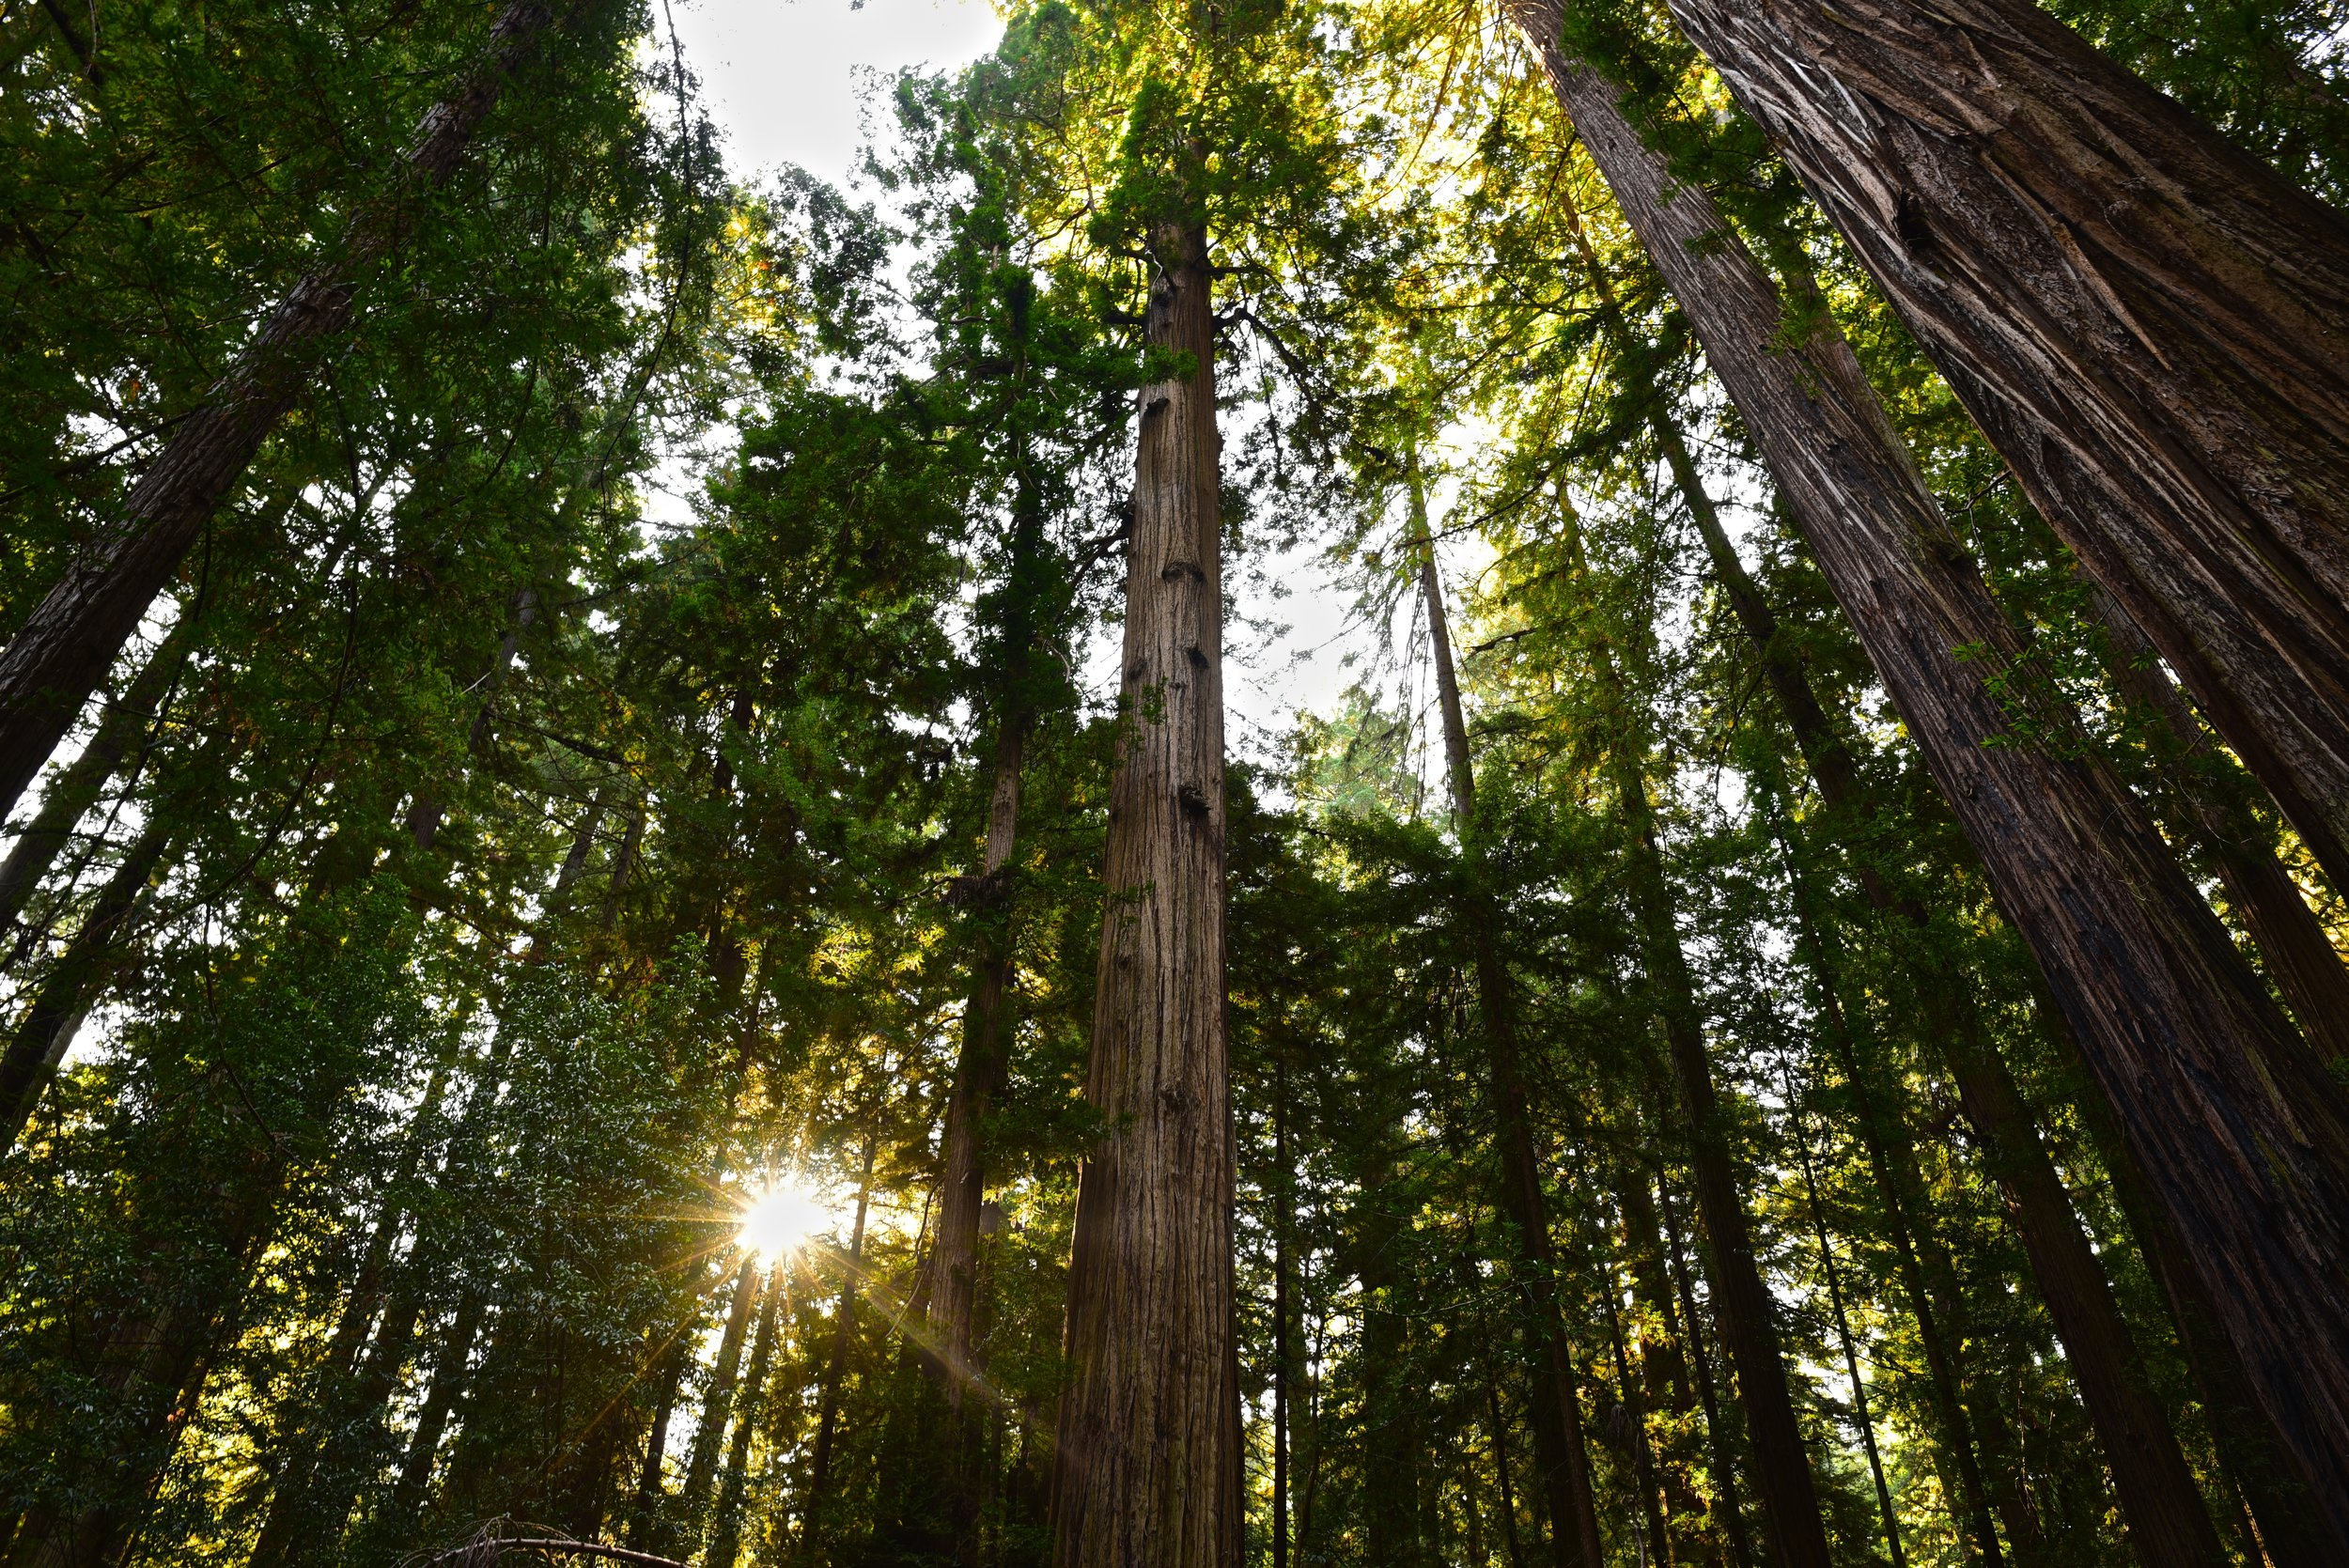 Sunburst peaking through the Redwoods